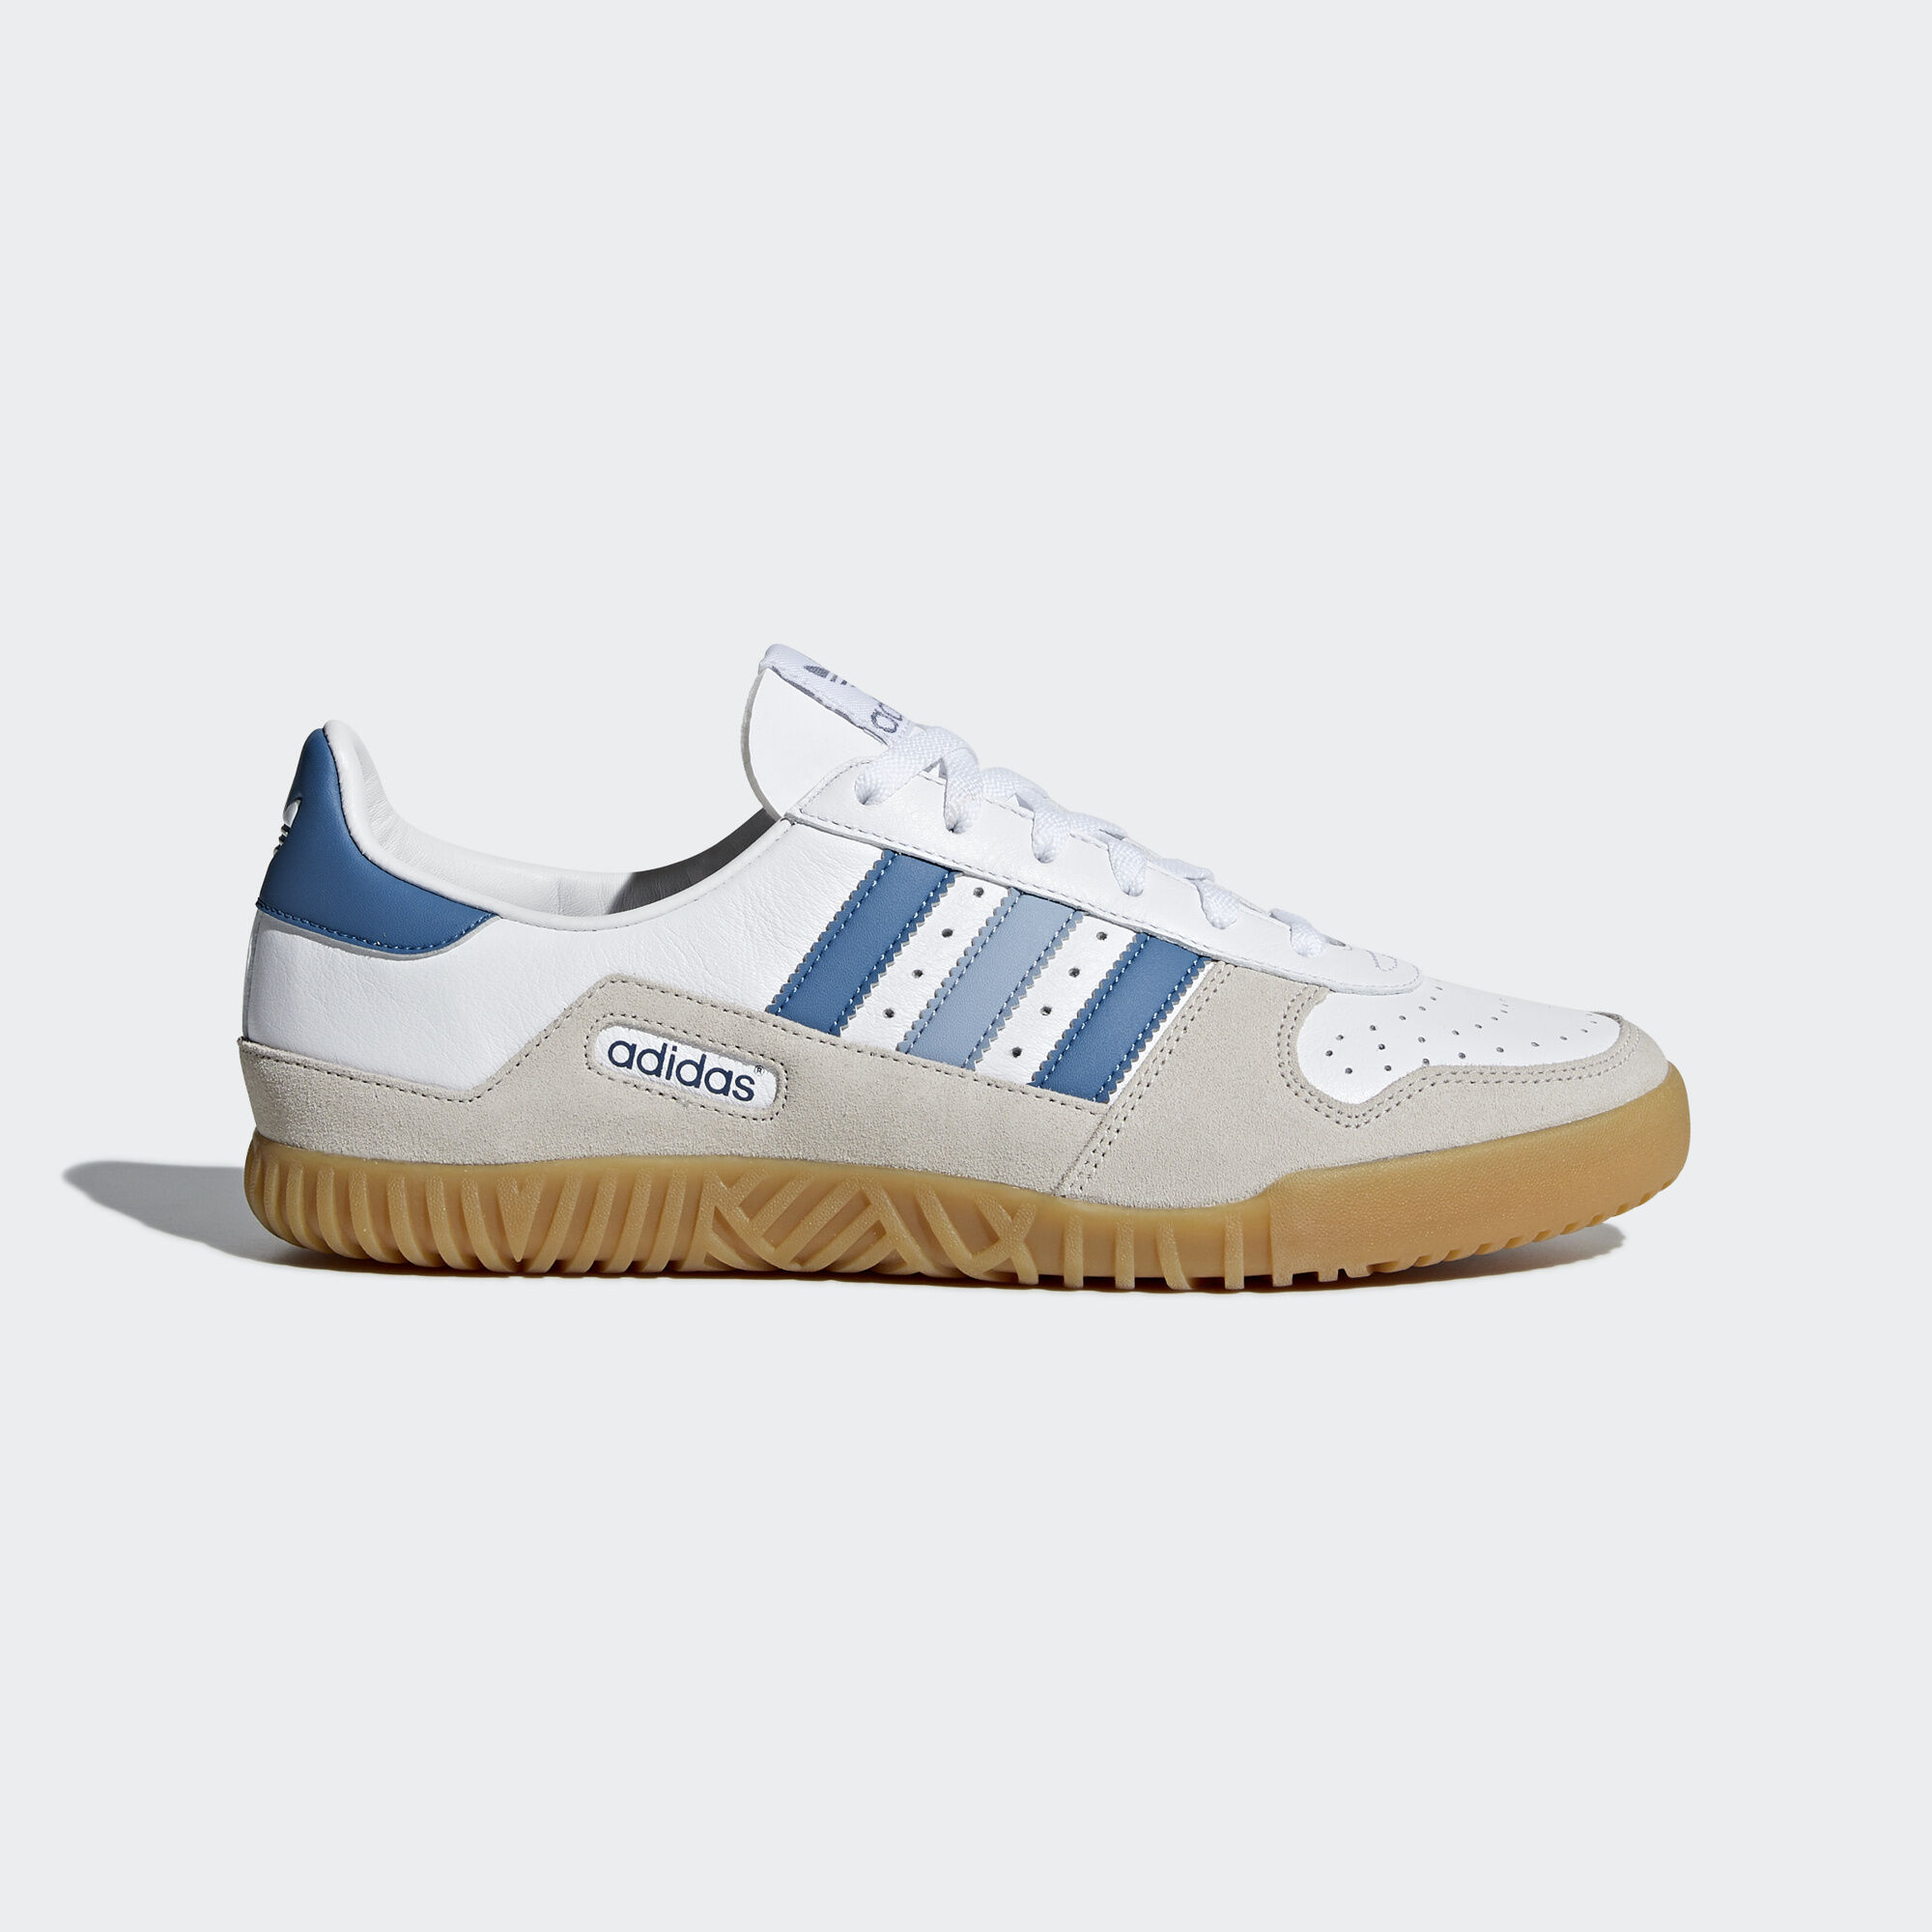 4be166dc208 ... best price adidas indoor comp spzl shoes ftwr white supplier colour  clear brown b41820 9489b 3b8c9